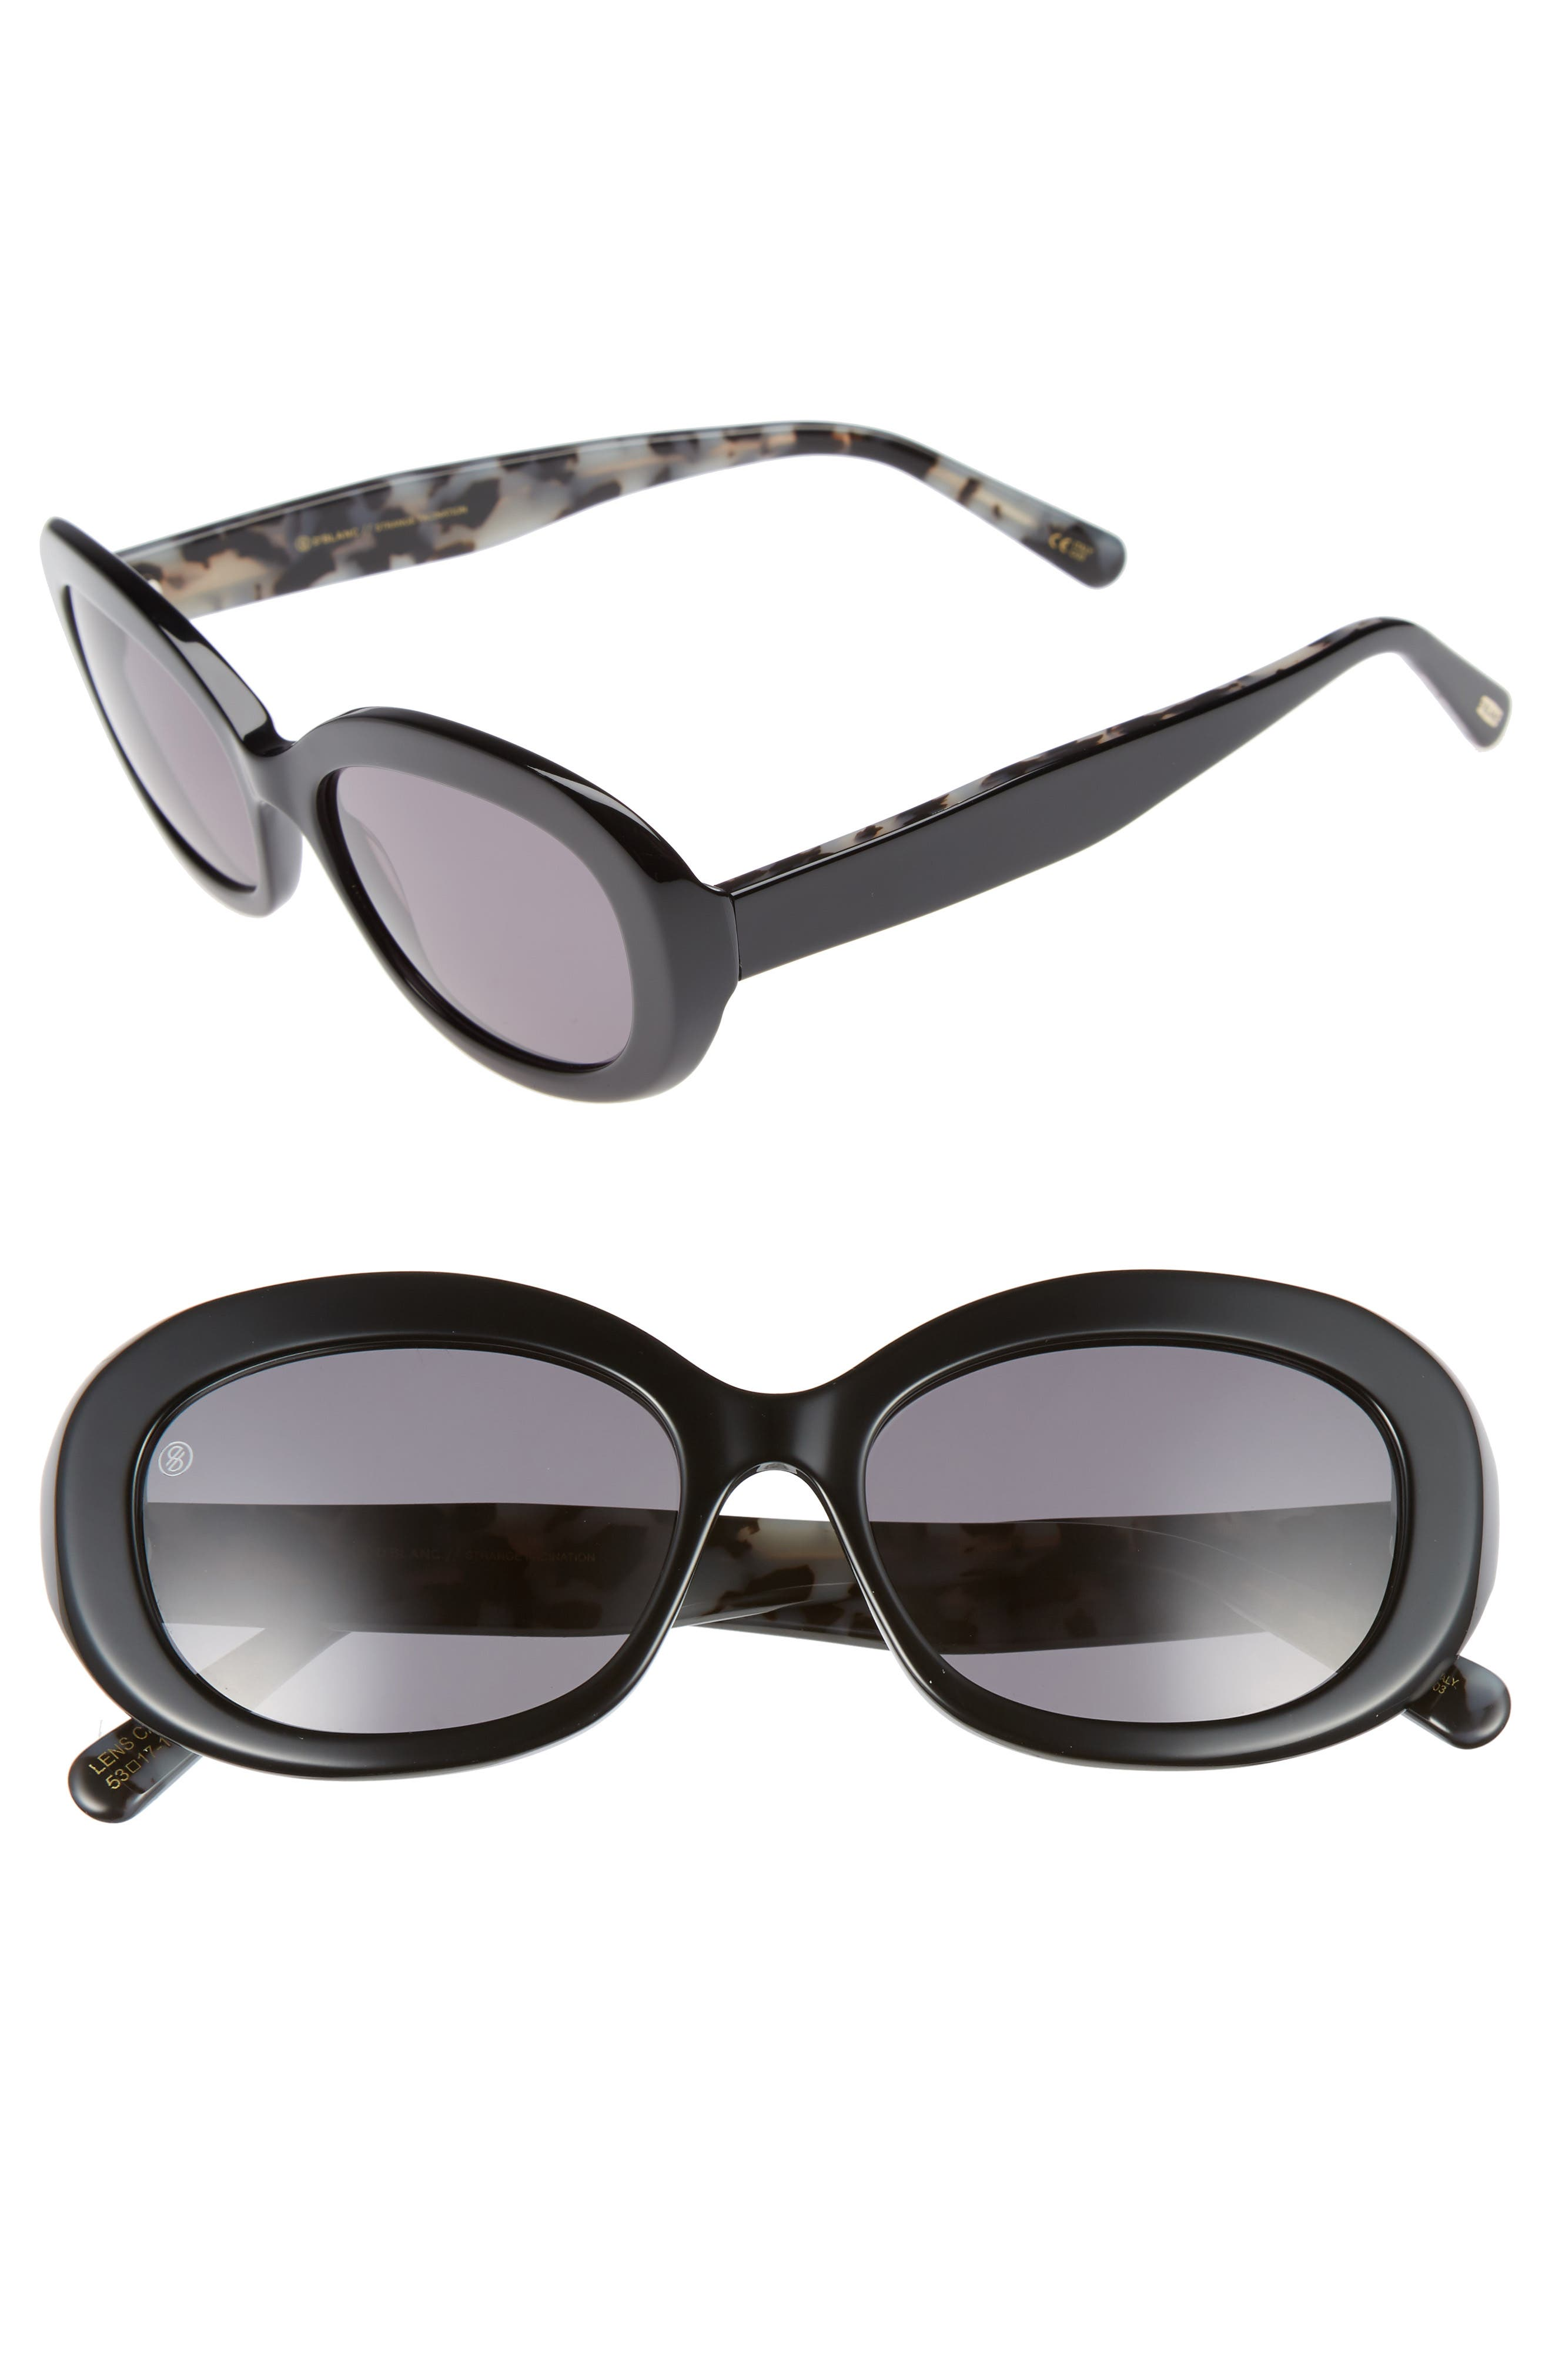 DBLANC, D'BLANC Strange Fascination 53mm Oval Sunglasses, Main thumbnail 1, color, 001